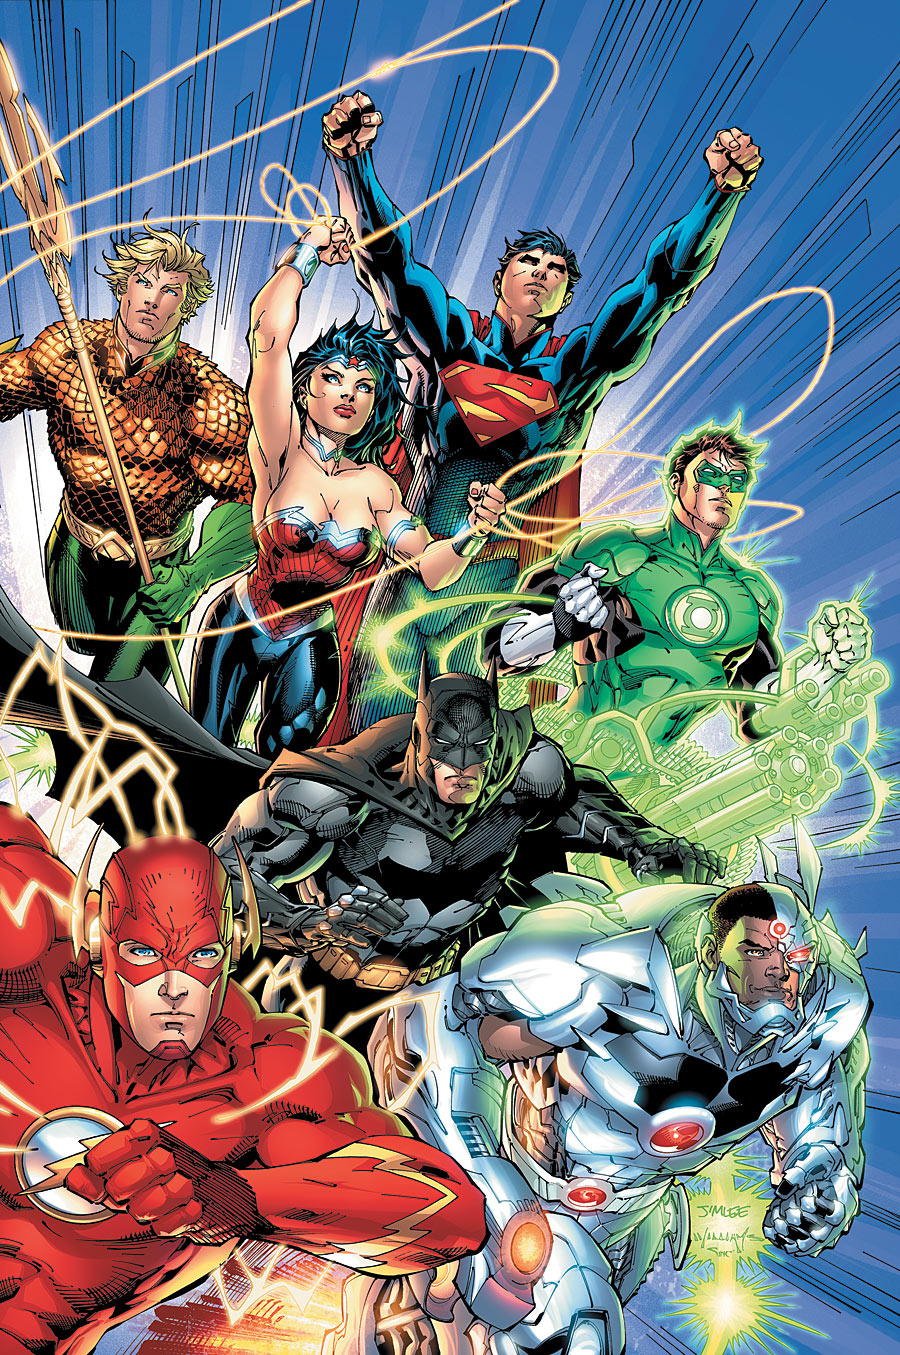 ¿Qué es The New 52?